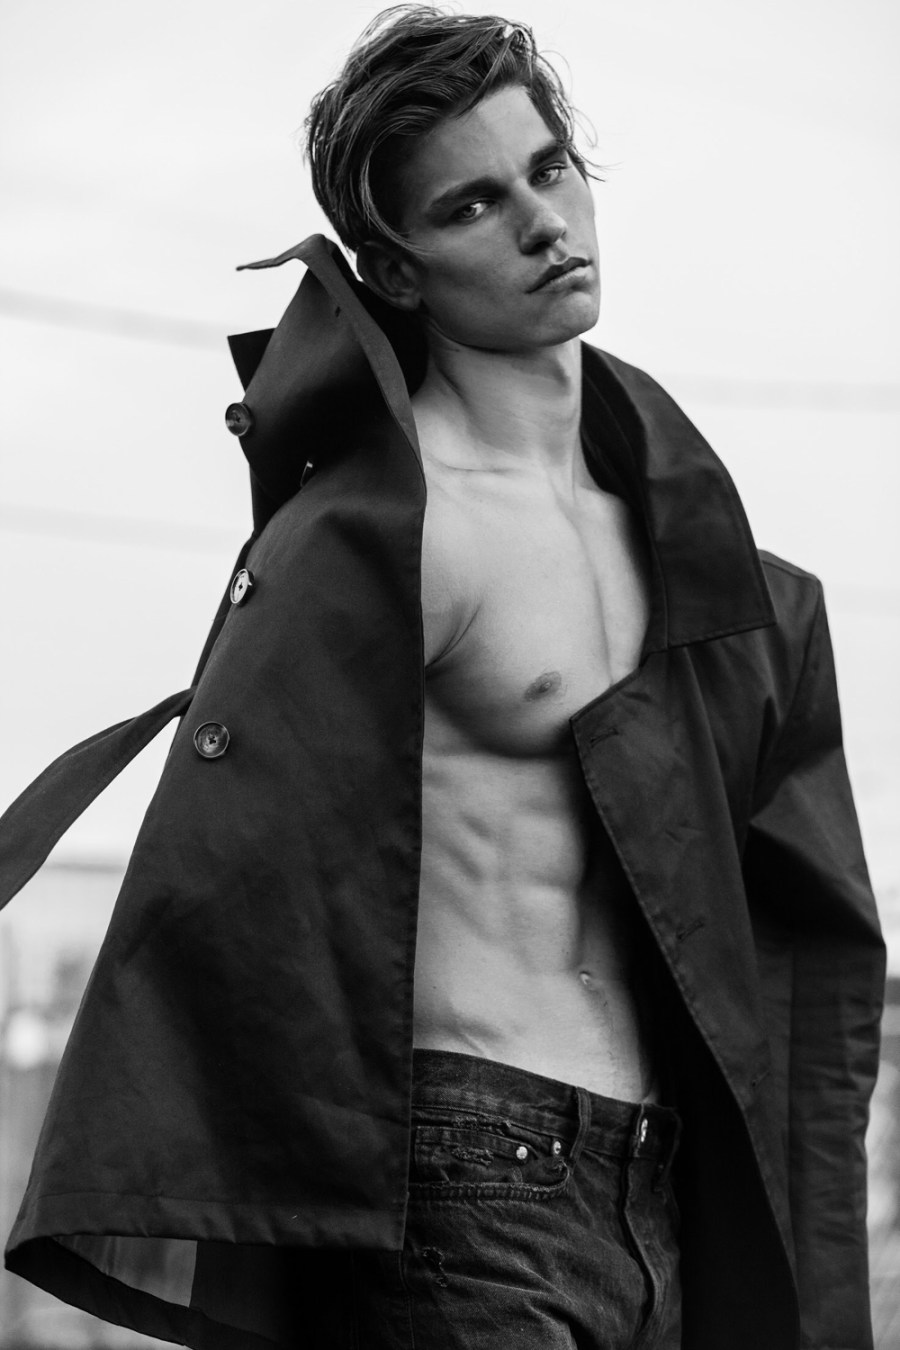 Dominic Blanchard by Diabe Sale11